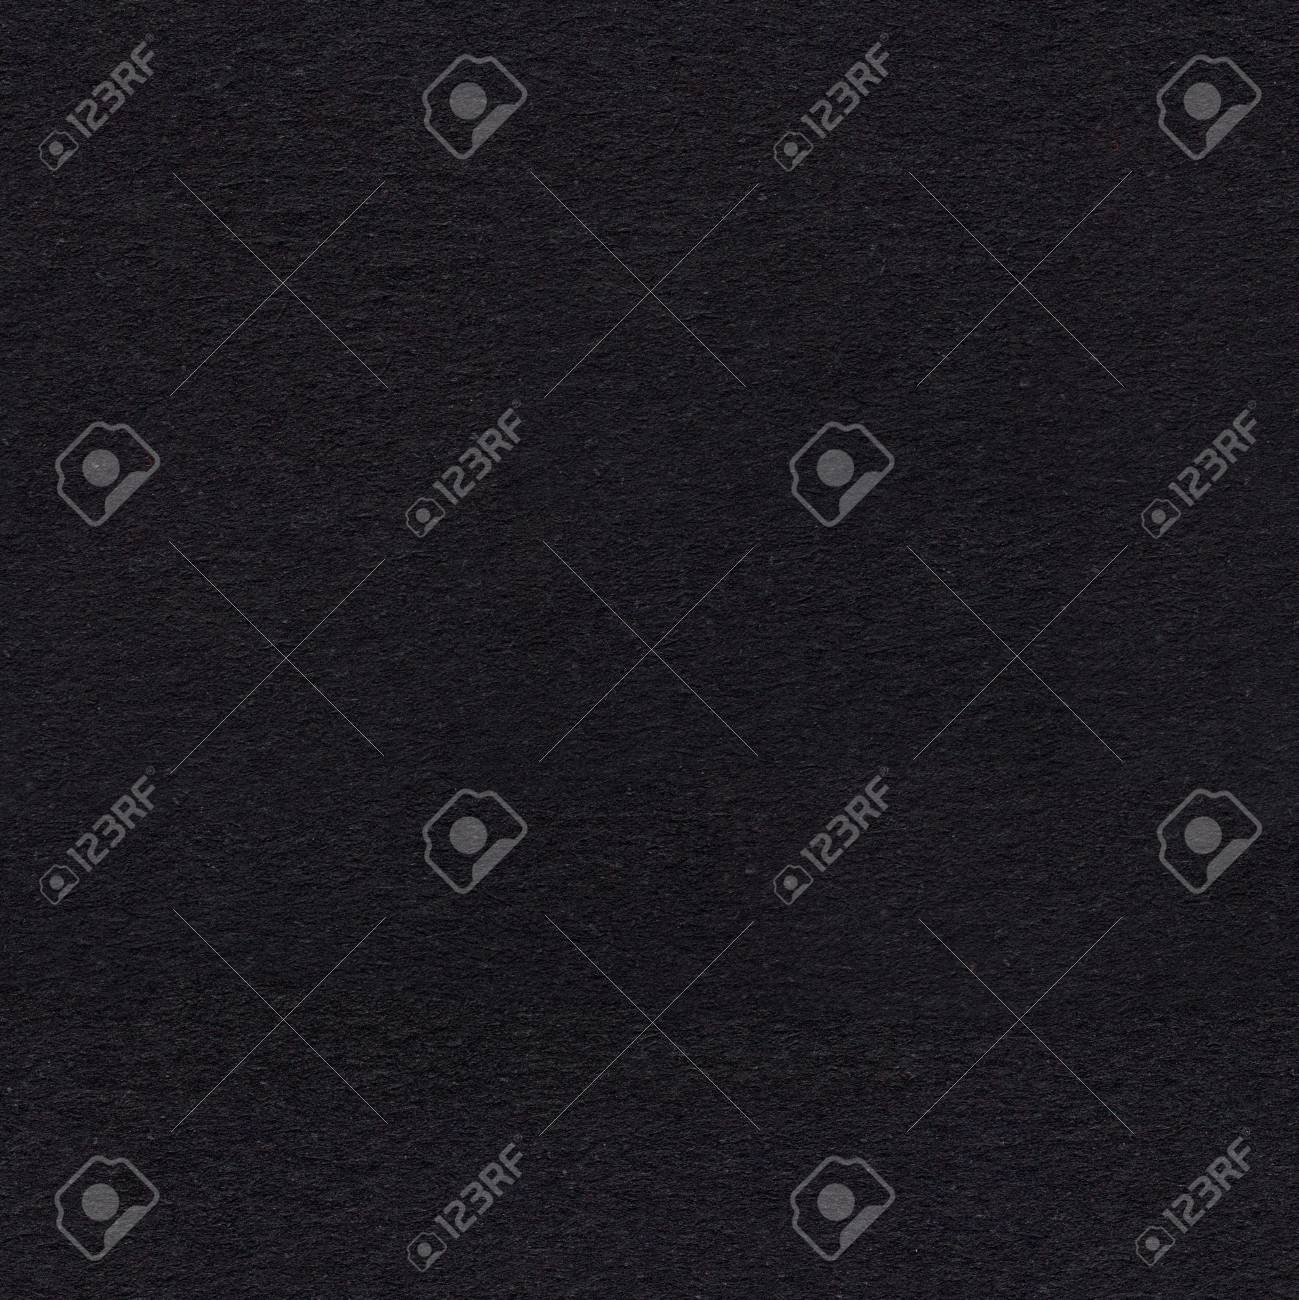 seamless black wall texture. Black Classic Wall Texture. Seamless Square Background, Tile Ready. High Quality Texture In